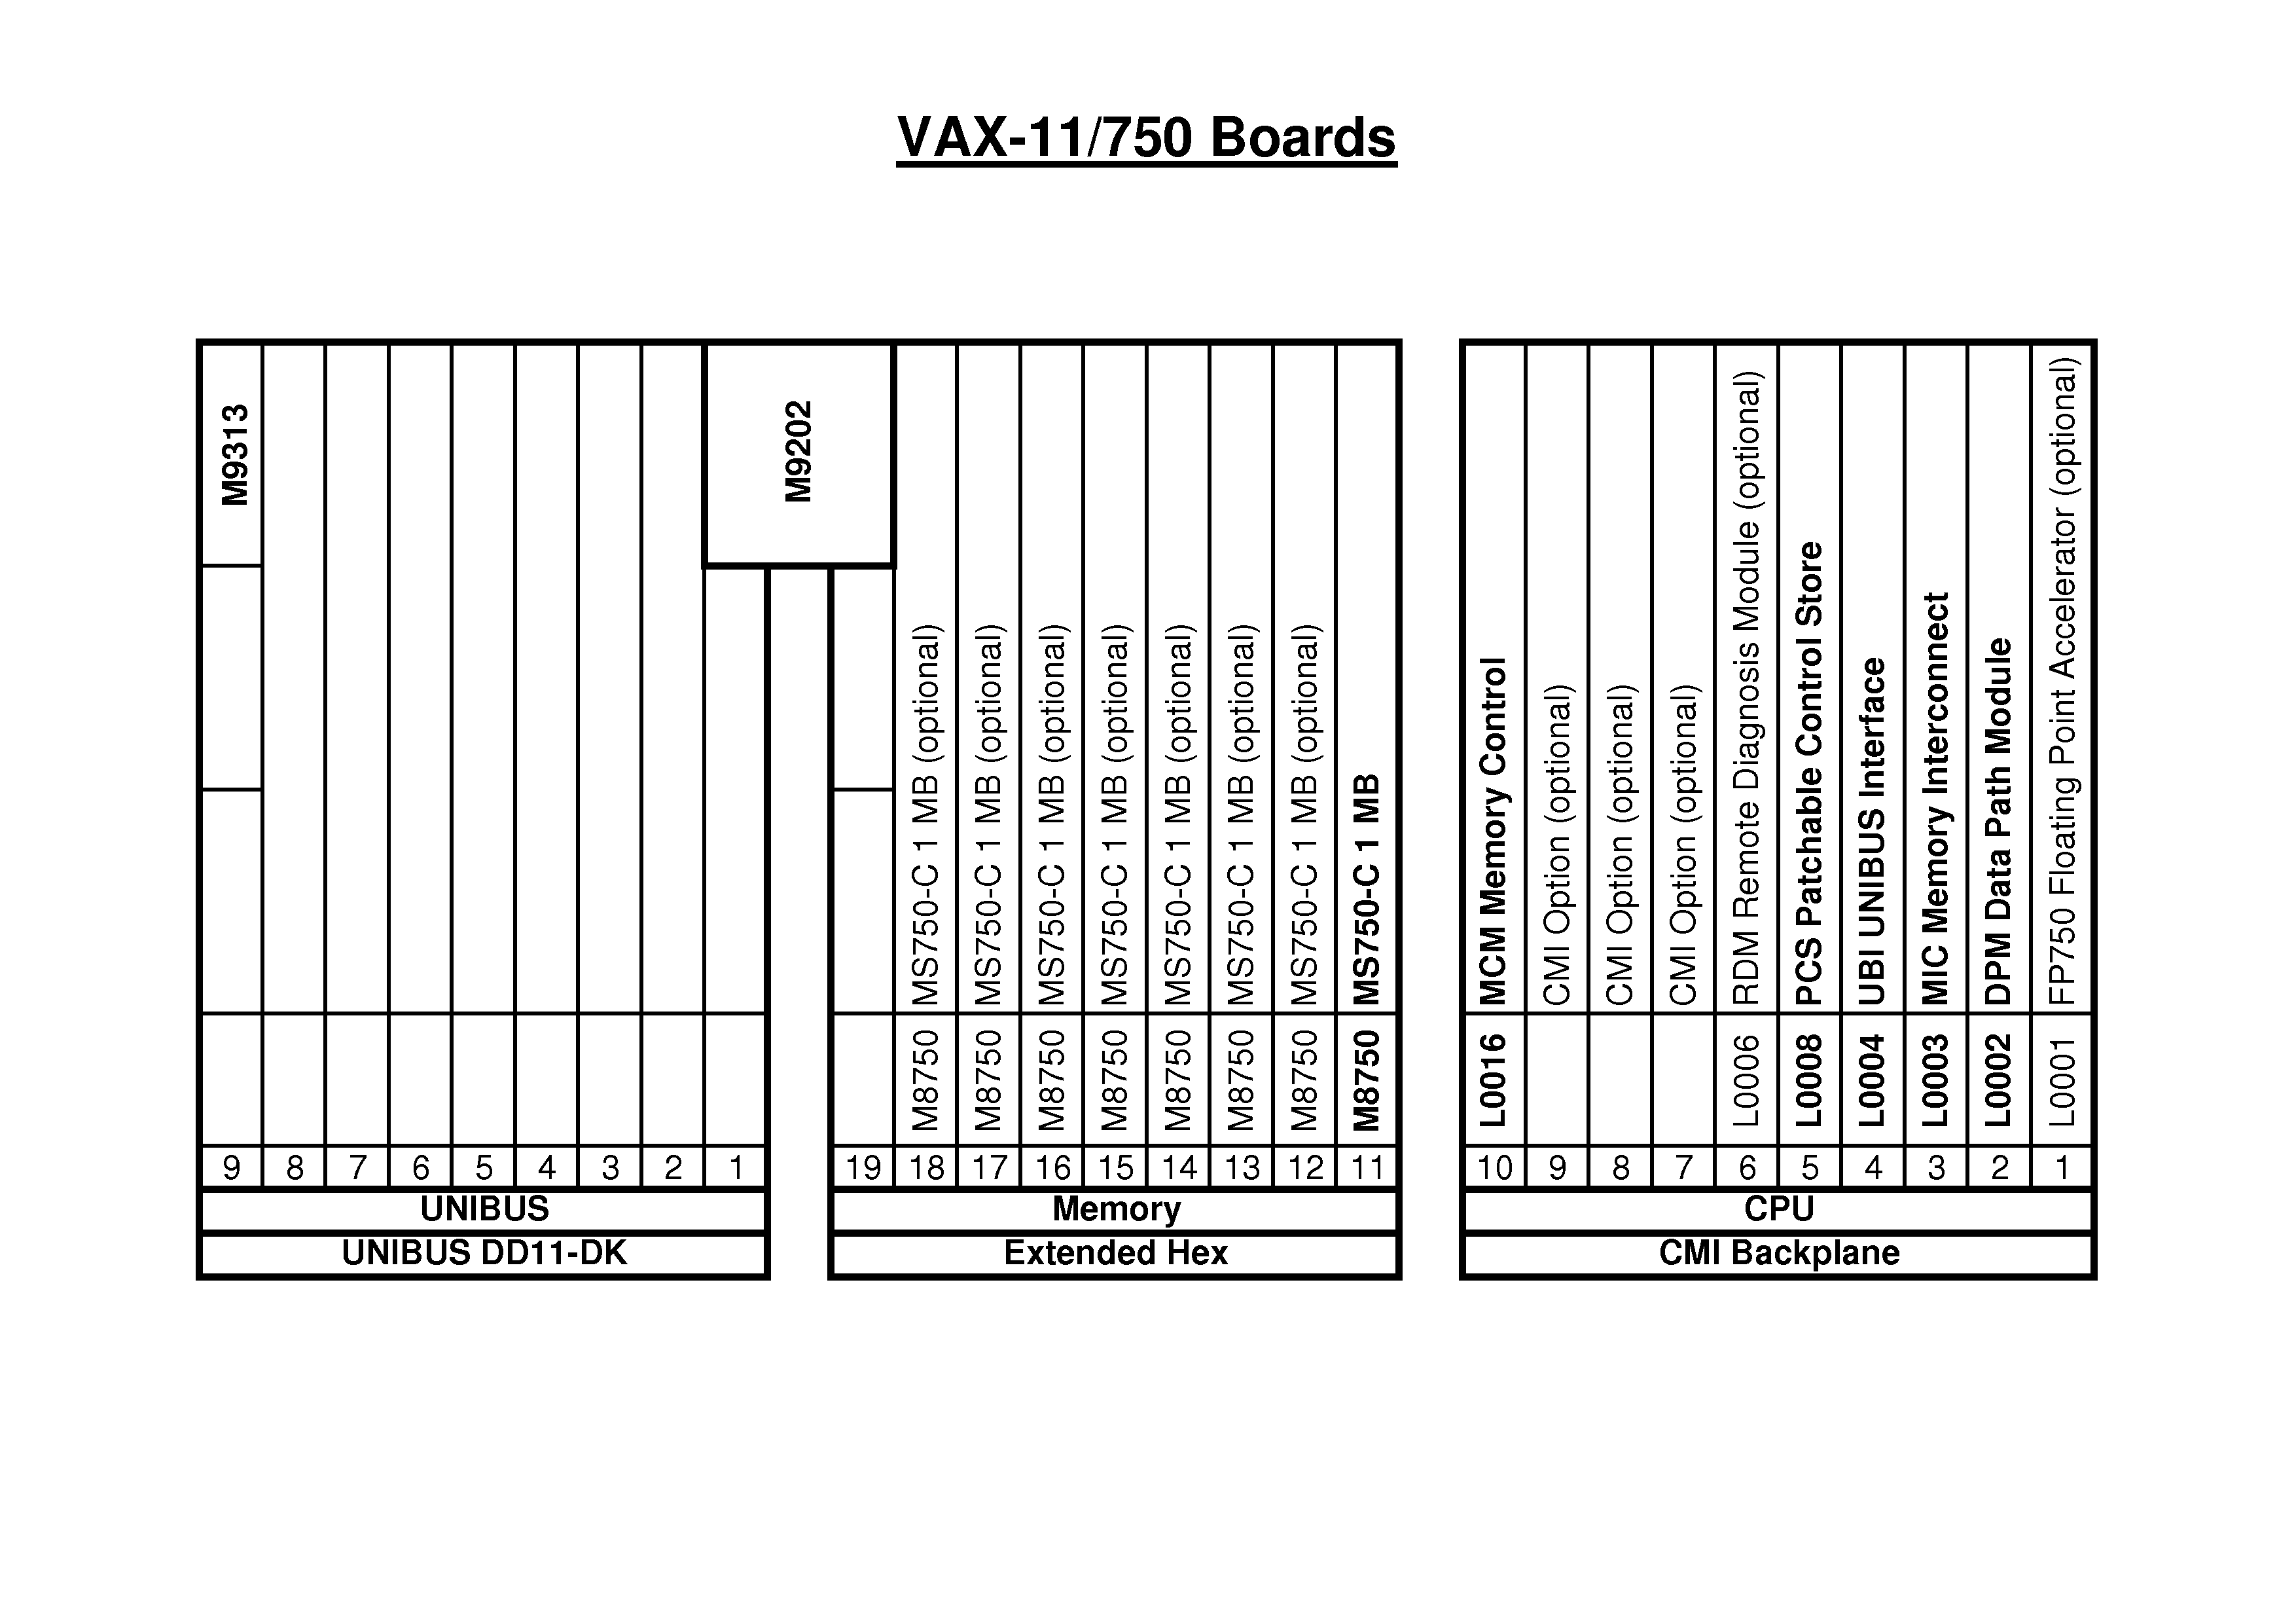 vax-11_750_boards